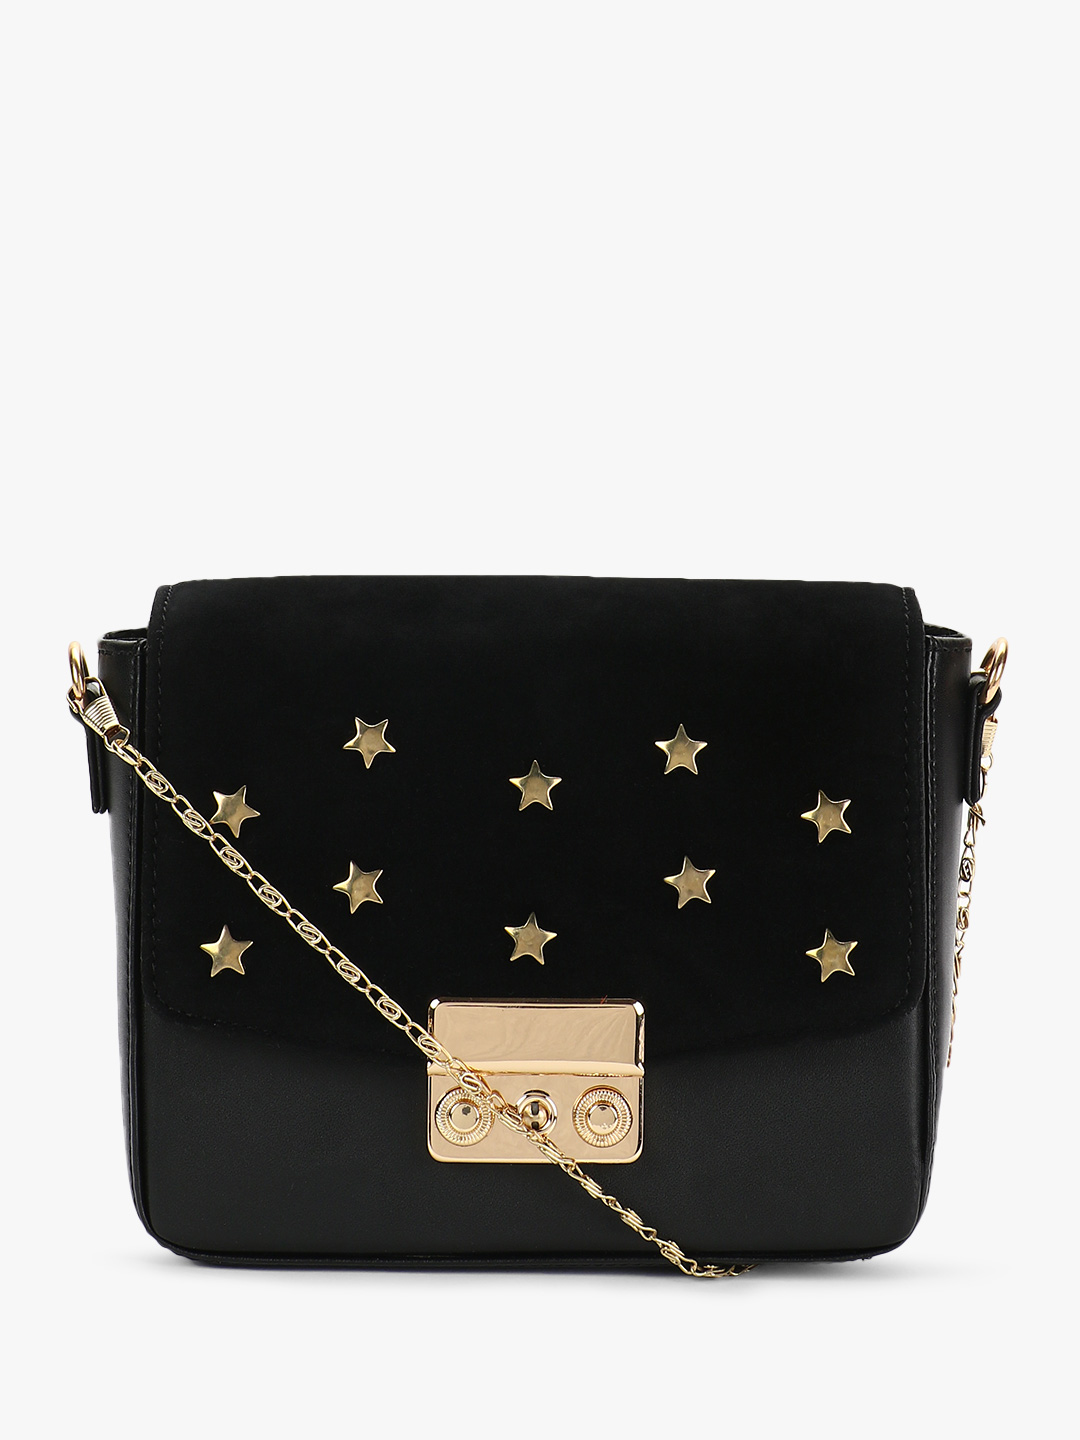 Gusto Black Star Embellished Suede Sling Bag 1